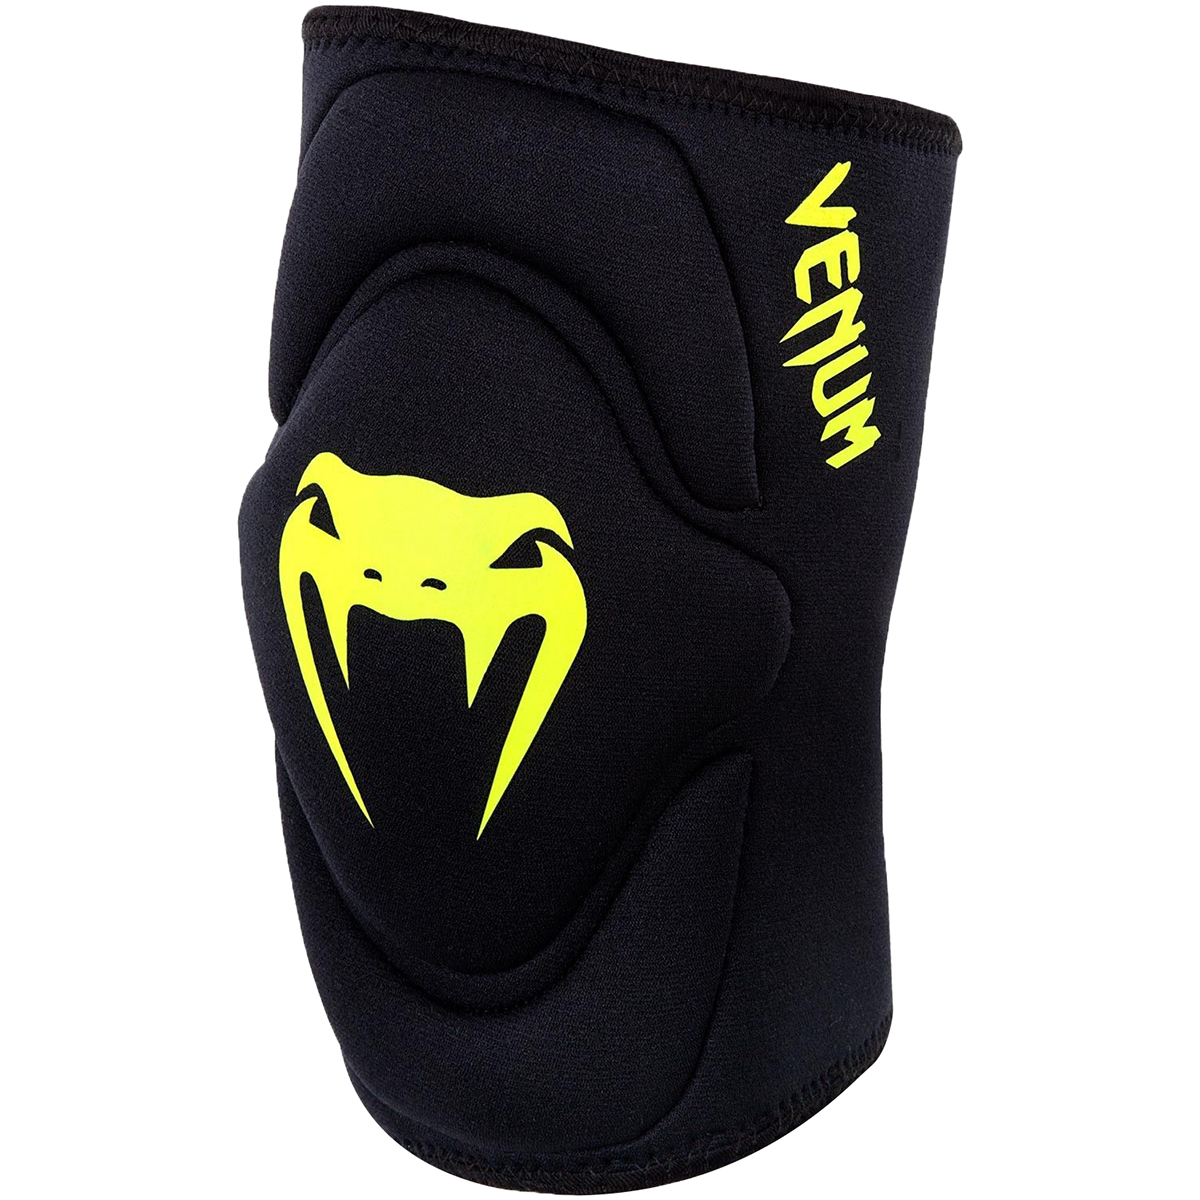 thumbnail 28 - Venum-Kontact-Gel-Shock-System-Protective-MMA-Training-Knee-Pads